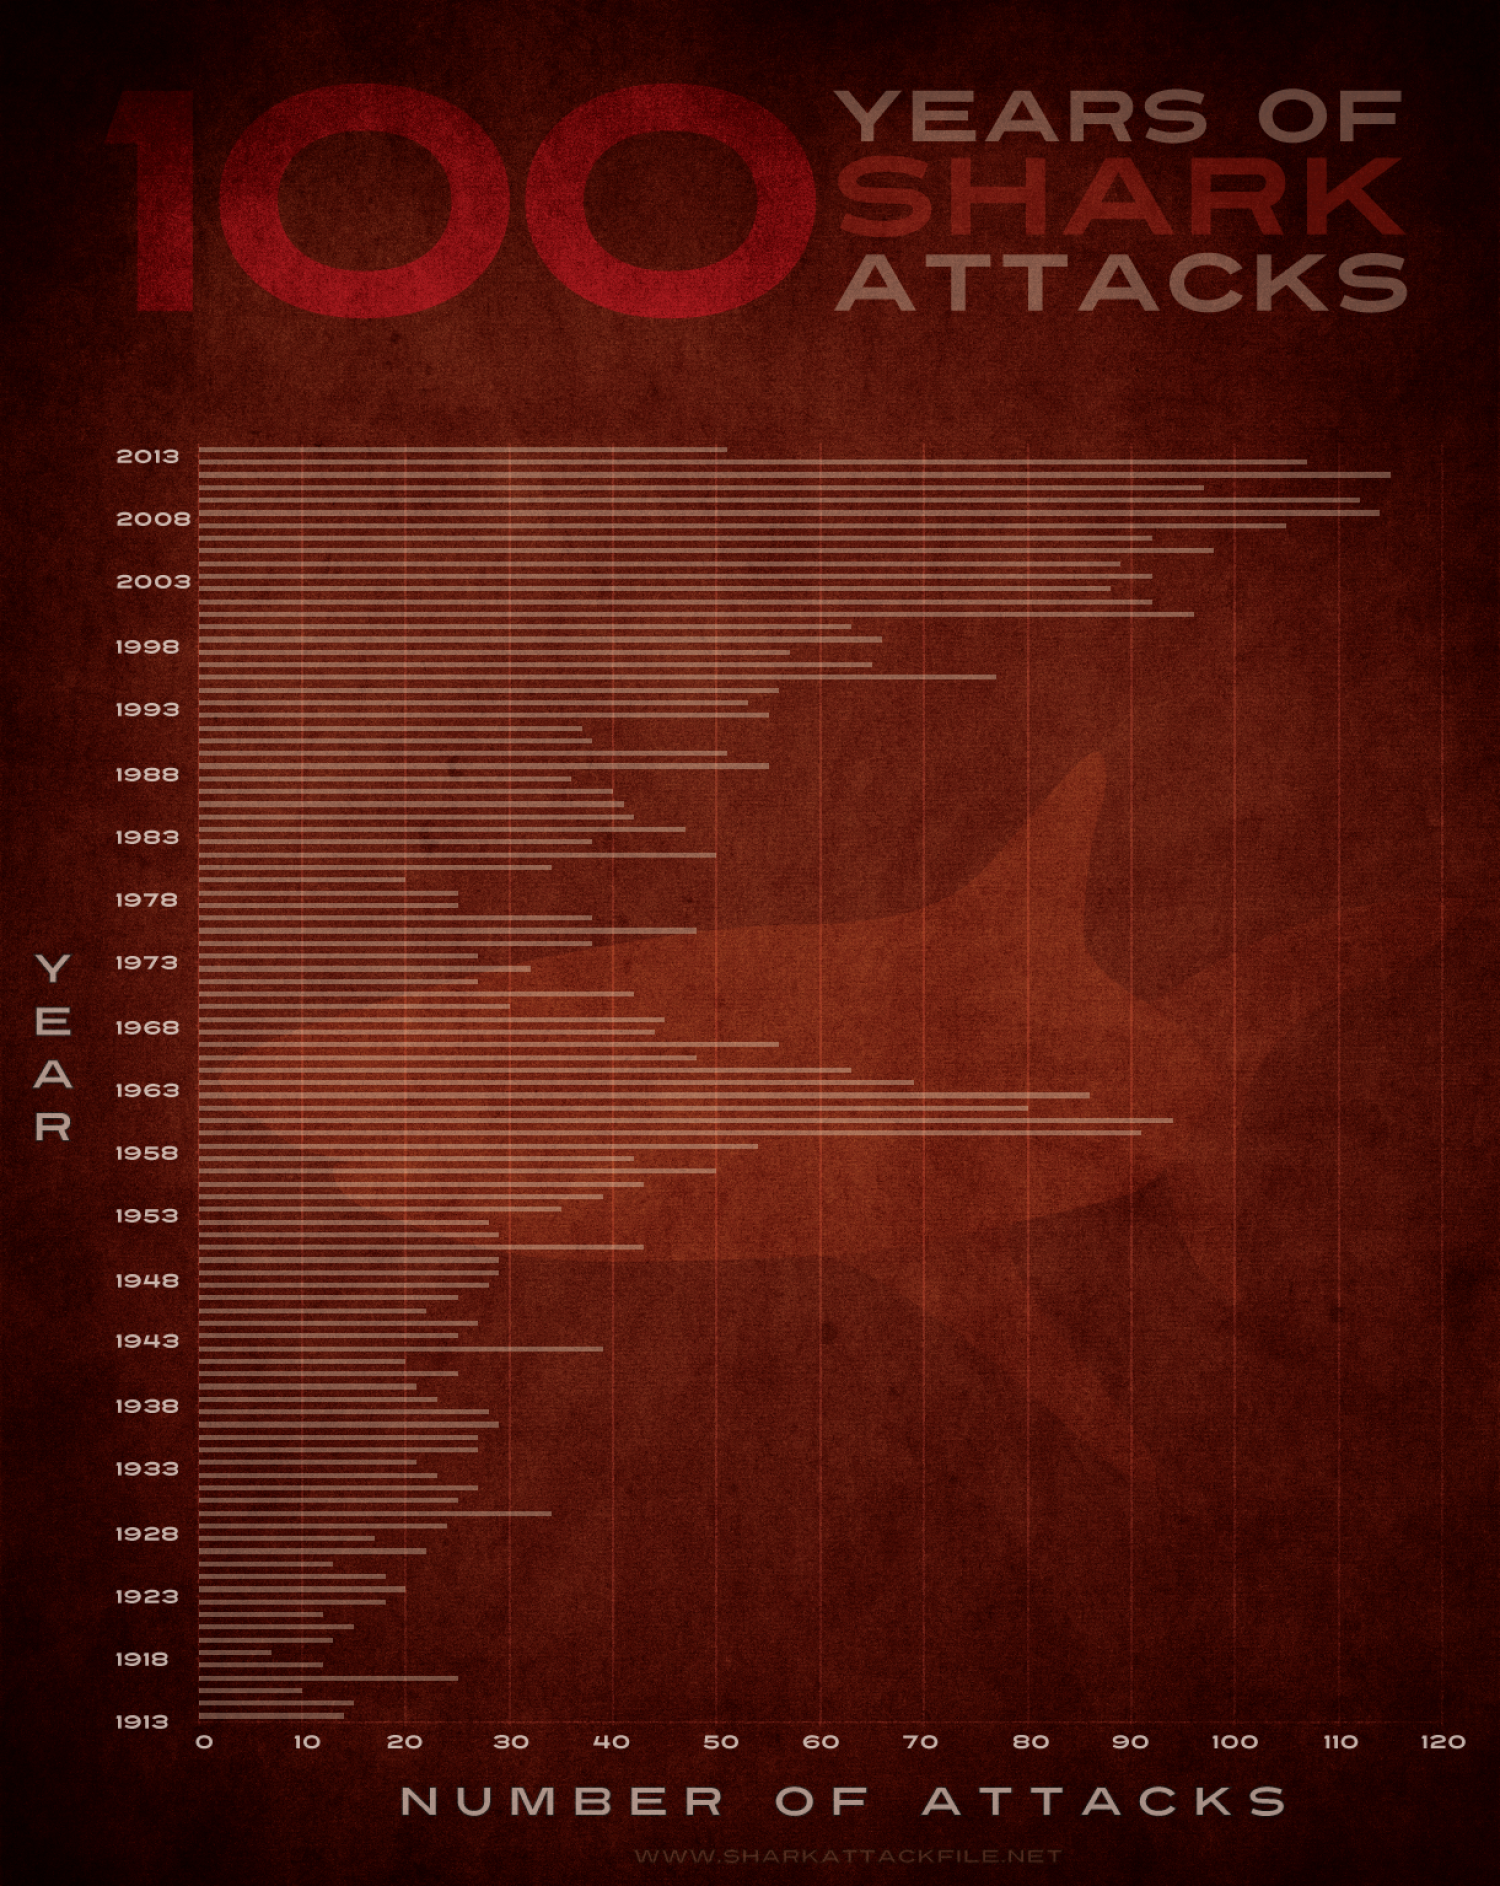 100 Years of Shark Attacks Infographic